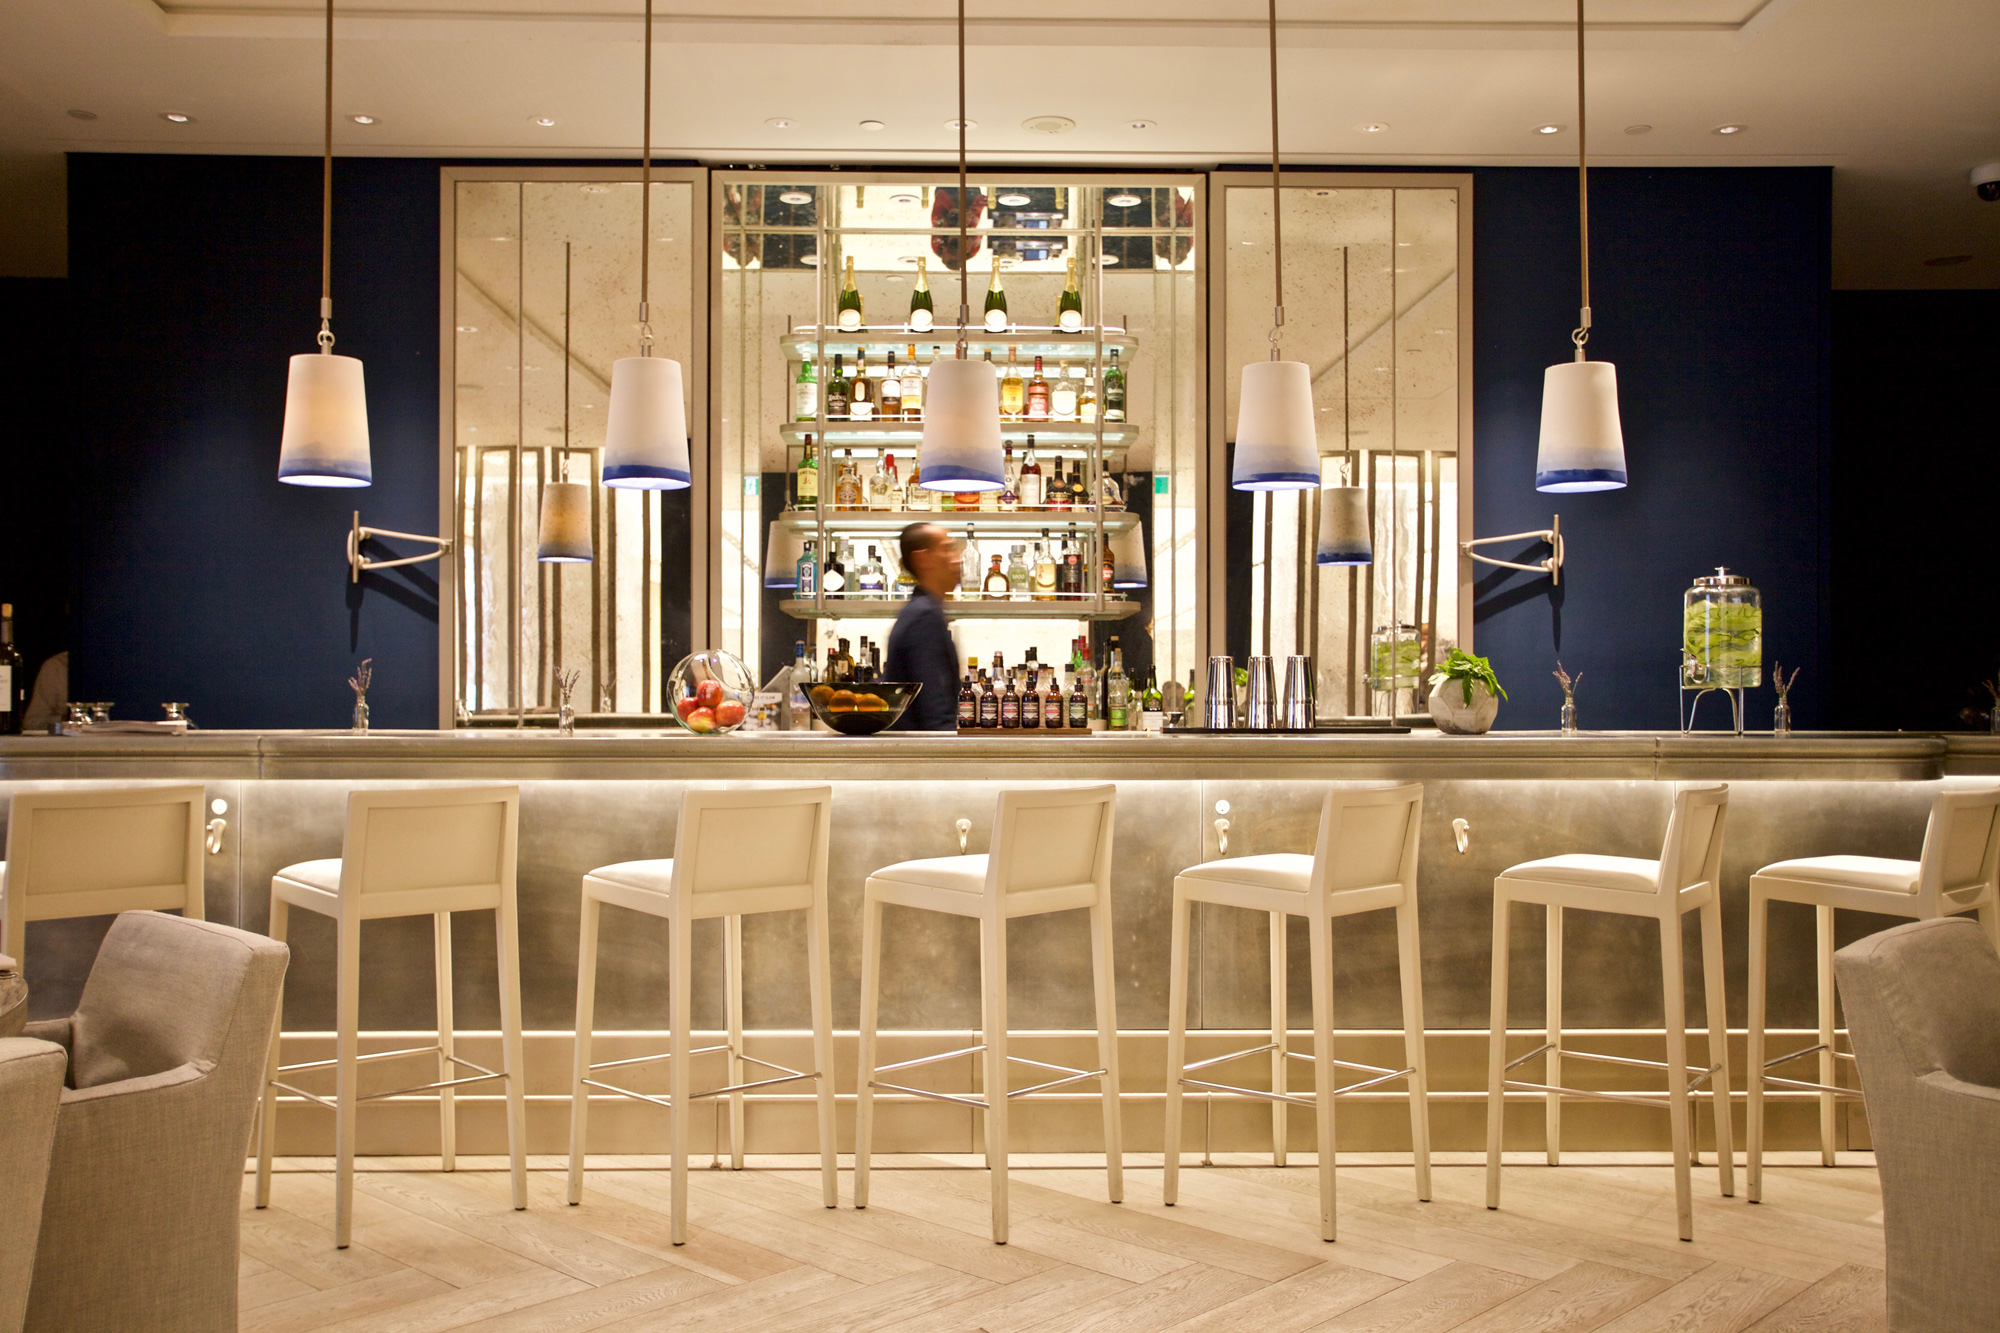 983abebd85c9 Colette Grand Cafe has just opened in the former Holts Cafe location in Holt  Renfrew. The new restaurant comes to us from Toronto s Chase Hospitality  Group